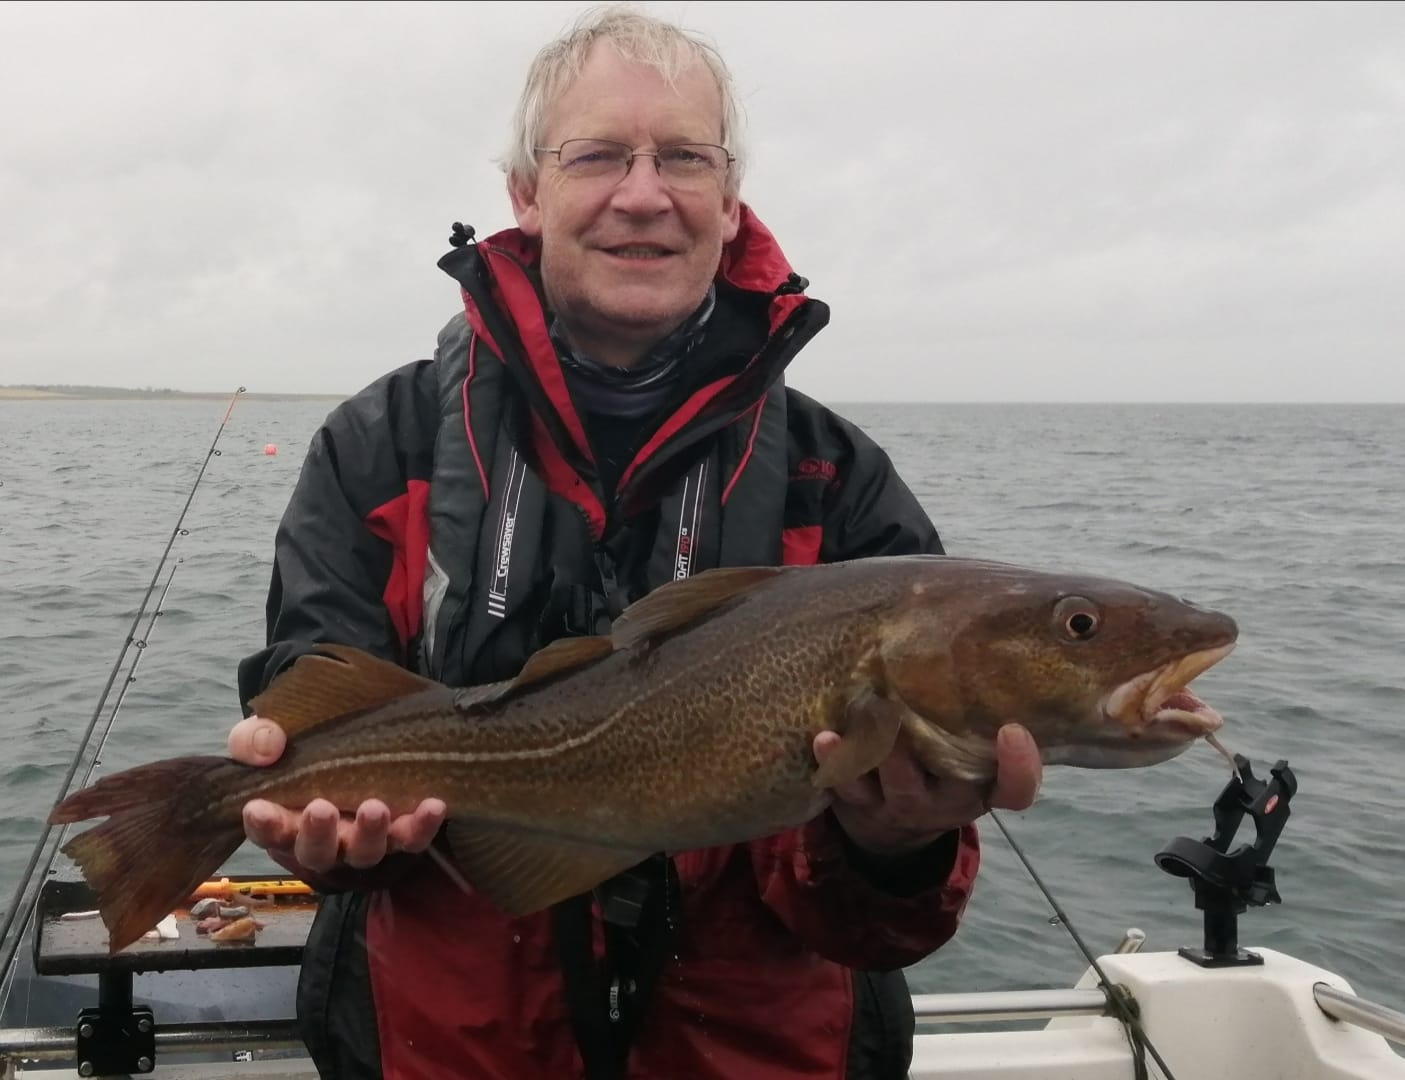 A nice St. Andrews cod, making 7lbs 4oz